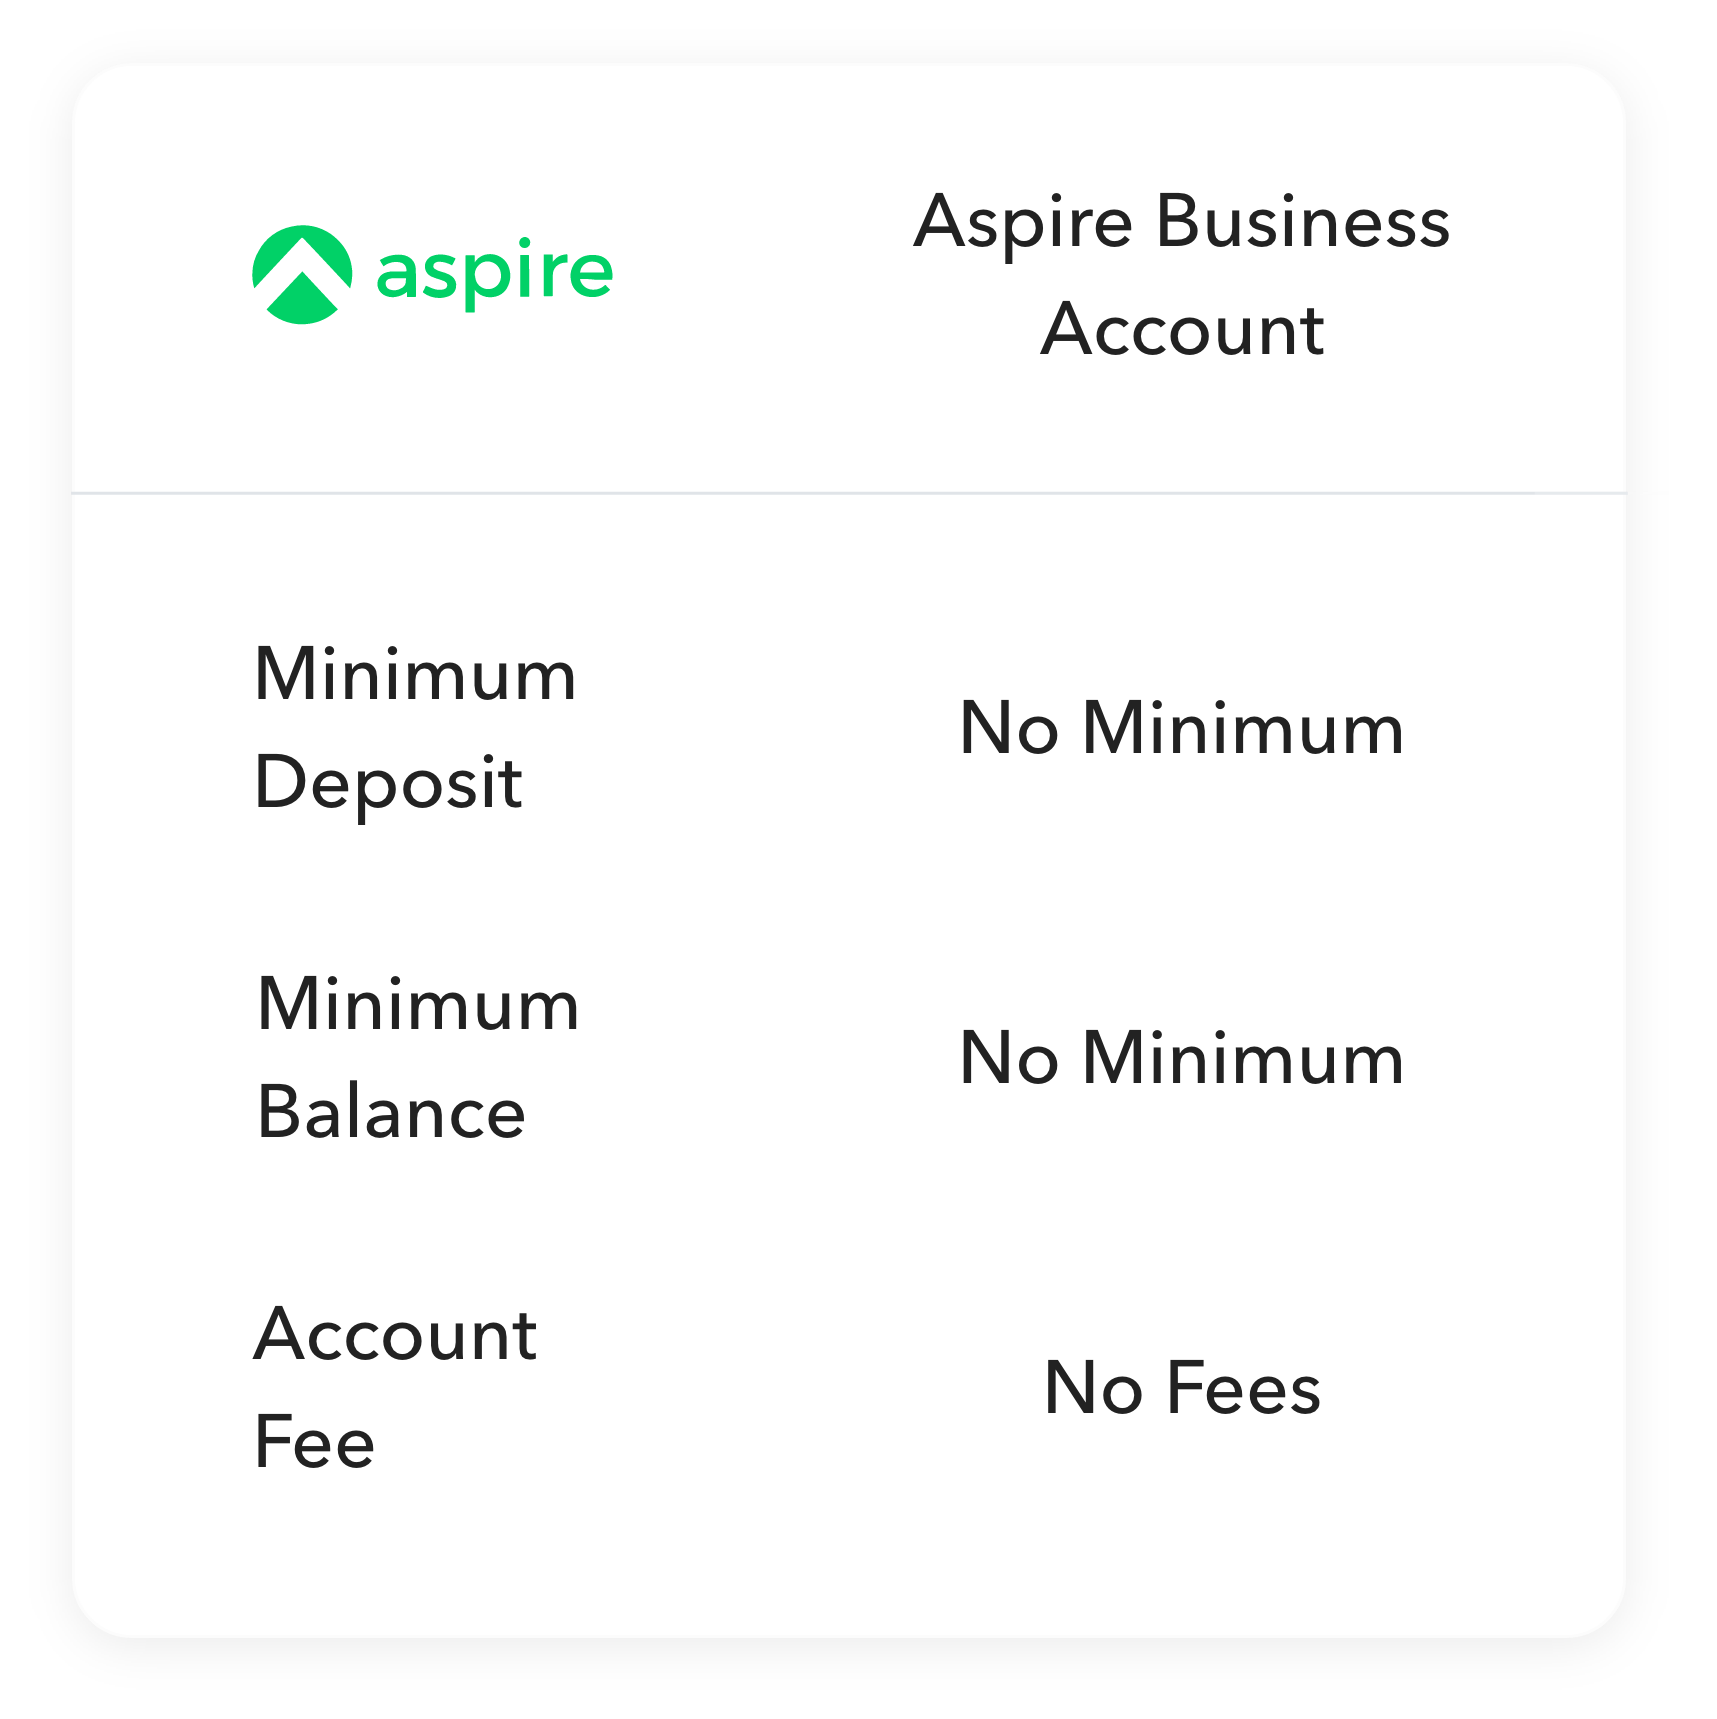 Aspire  support business banking online in Singapore